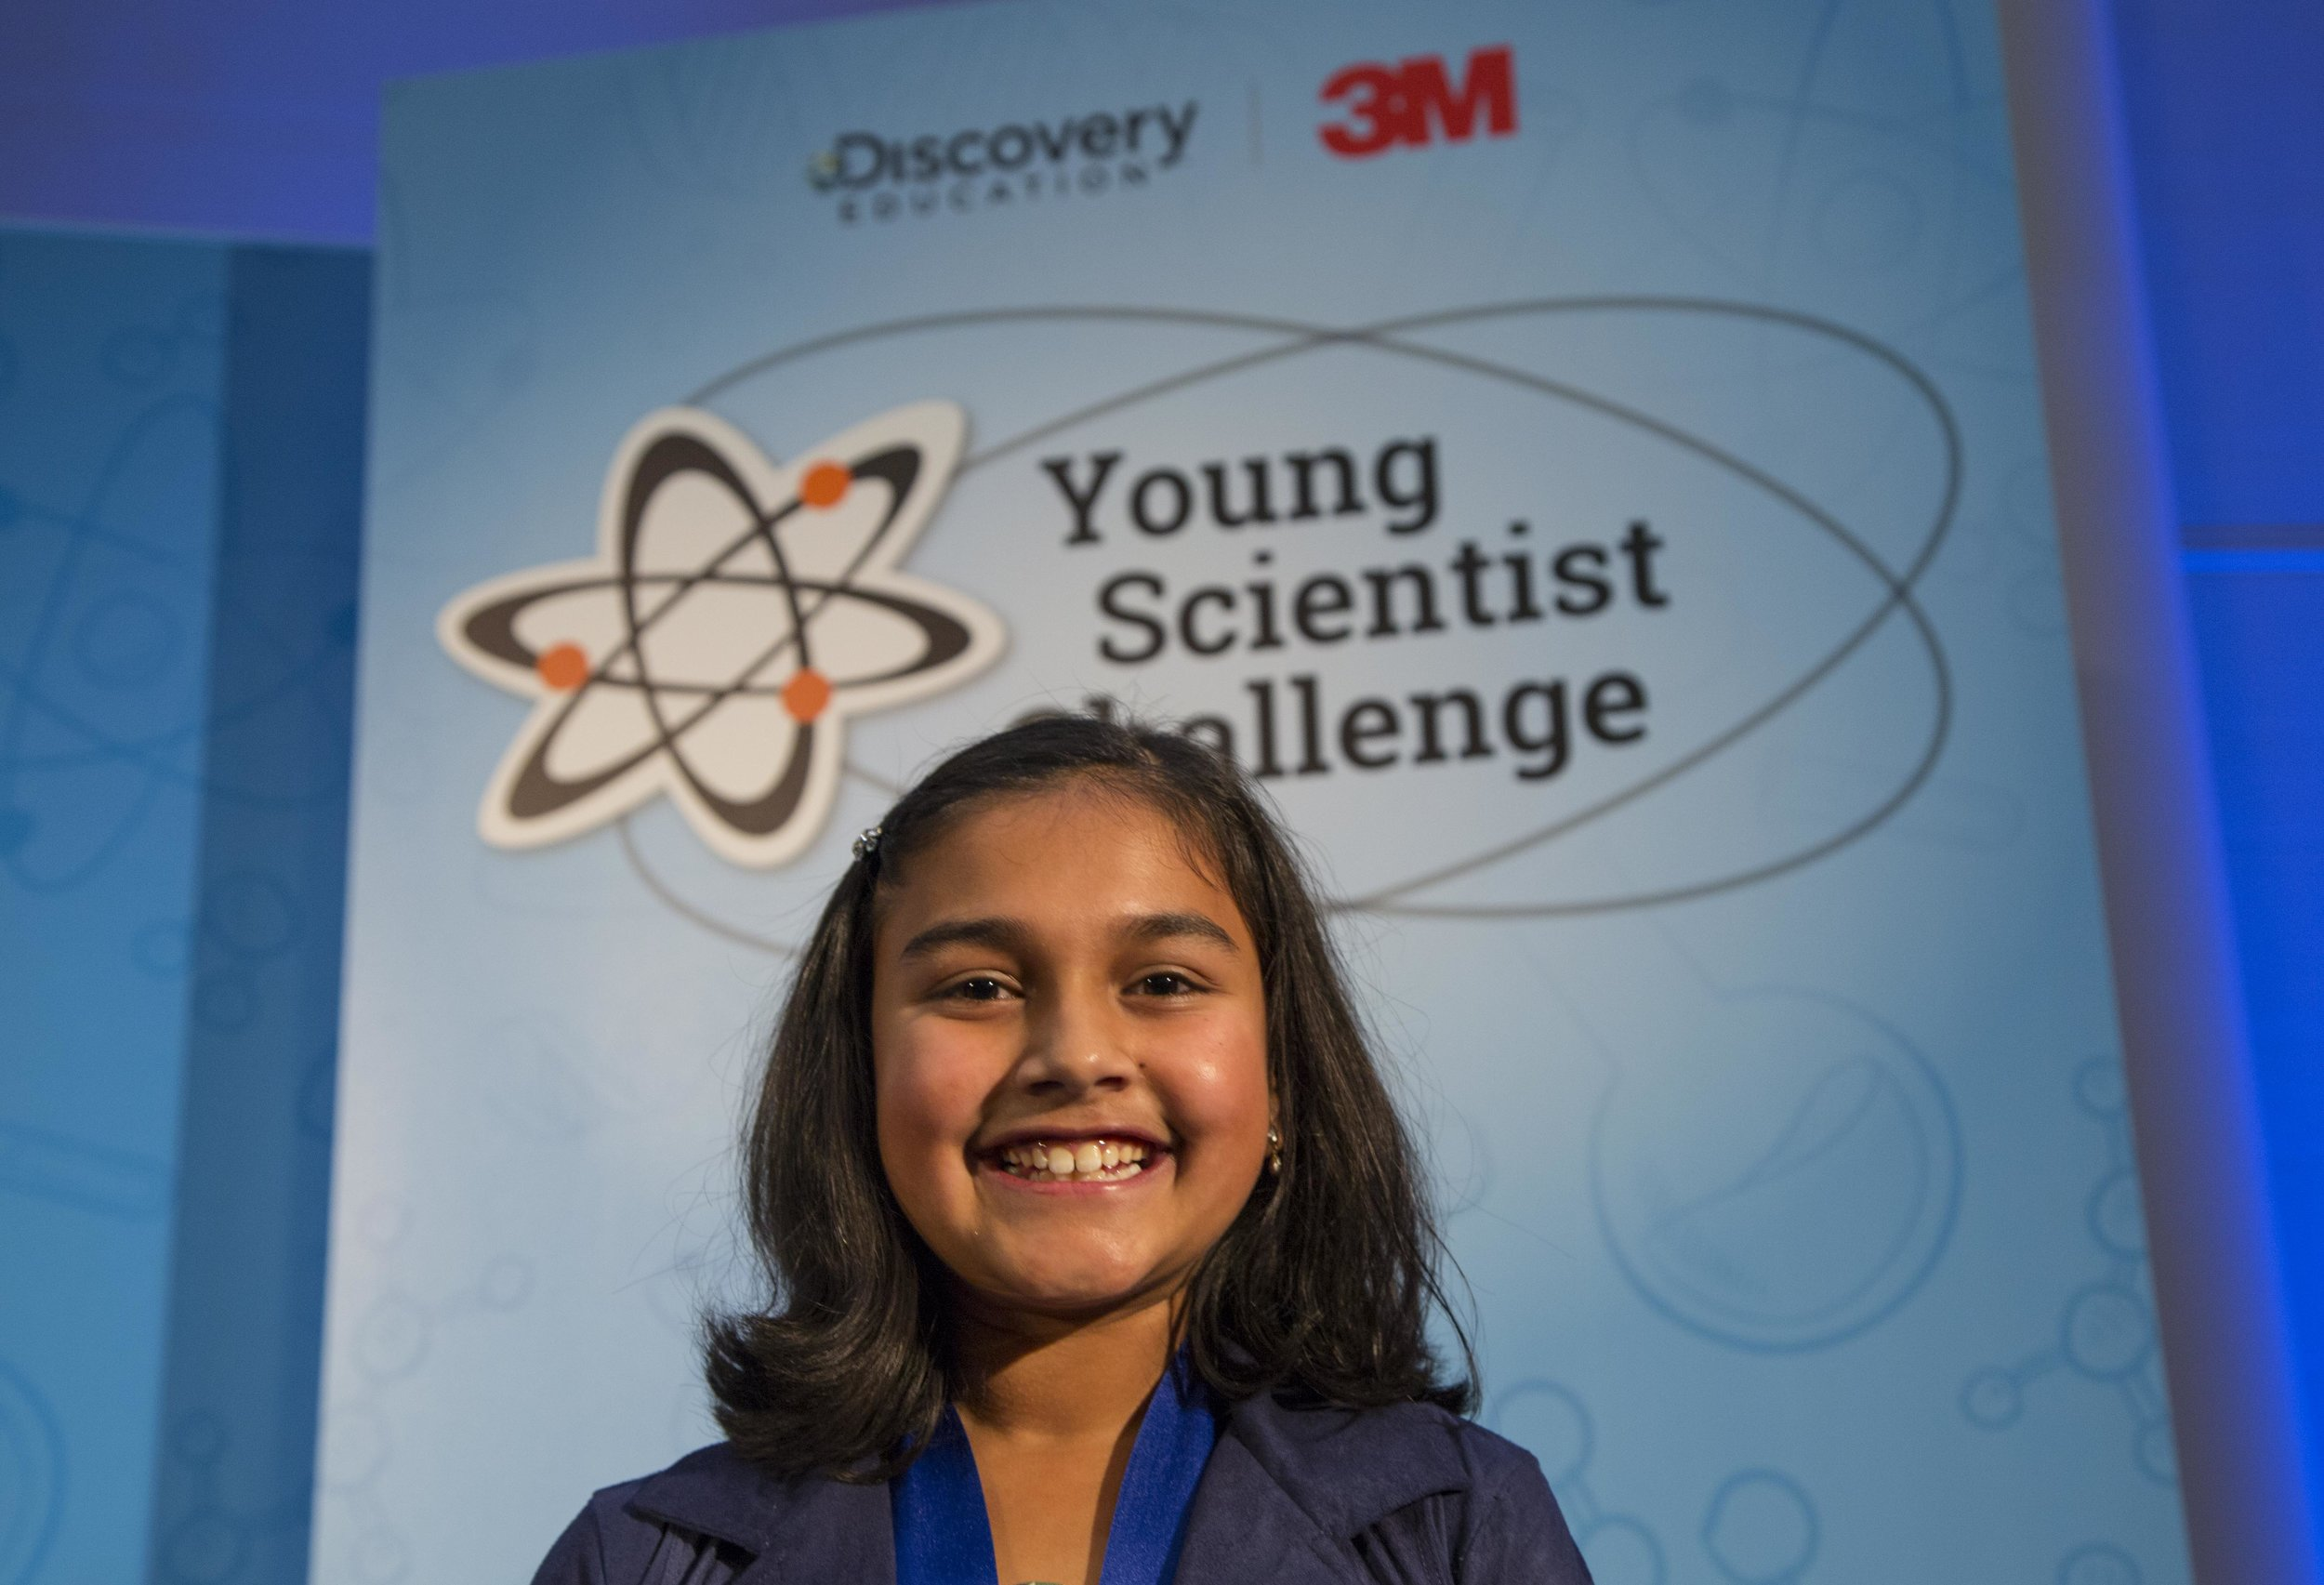 """Gitanjali Rao, 12 - The youngest in Mochi's roundup, middle schooler Gitanjali Rao is a rising star in the science and technology field. After reading one news story after another about the Flint water crisis, Rao, who is Indian American, sought to help communities affected by the lack of safe water. Eventually her dedication and research lead to her invention of an easy-to-use and inexpensive device that detects lead in drinking water, for which she received national attention. After being awarded $25,000 as winner of the Discovery Education EM Young Scientist Challenge, she continues to work to perfect her device with the guidance of scientist-mentors and her own curiosity. """"Science allows me to look at different paths in order to solve real-world problems, which is one of my passions,"""" she told NBC News. Rao proves that no matter how young, it is never too early to get down to work and make a difference. — C.Z.Image Credit: Discovery Education/Andy King"""